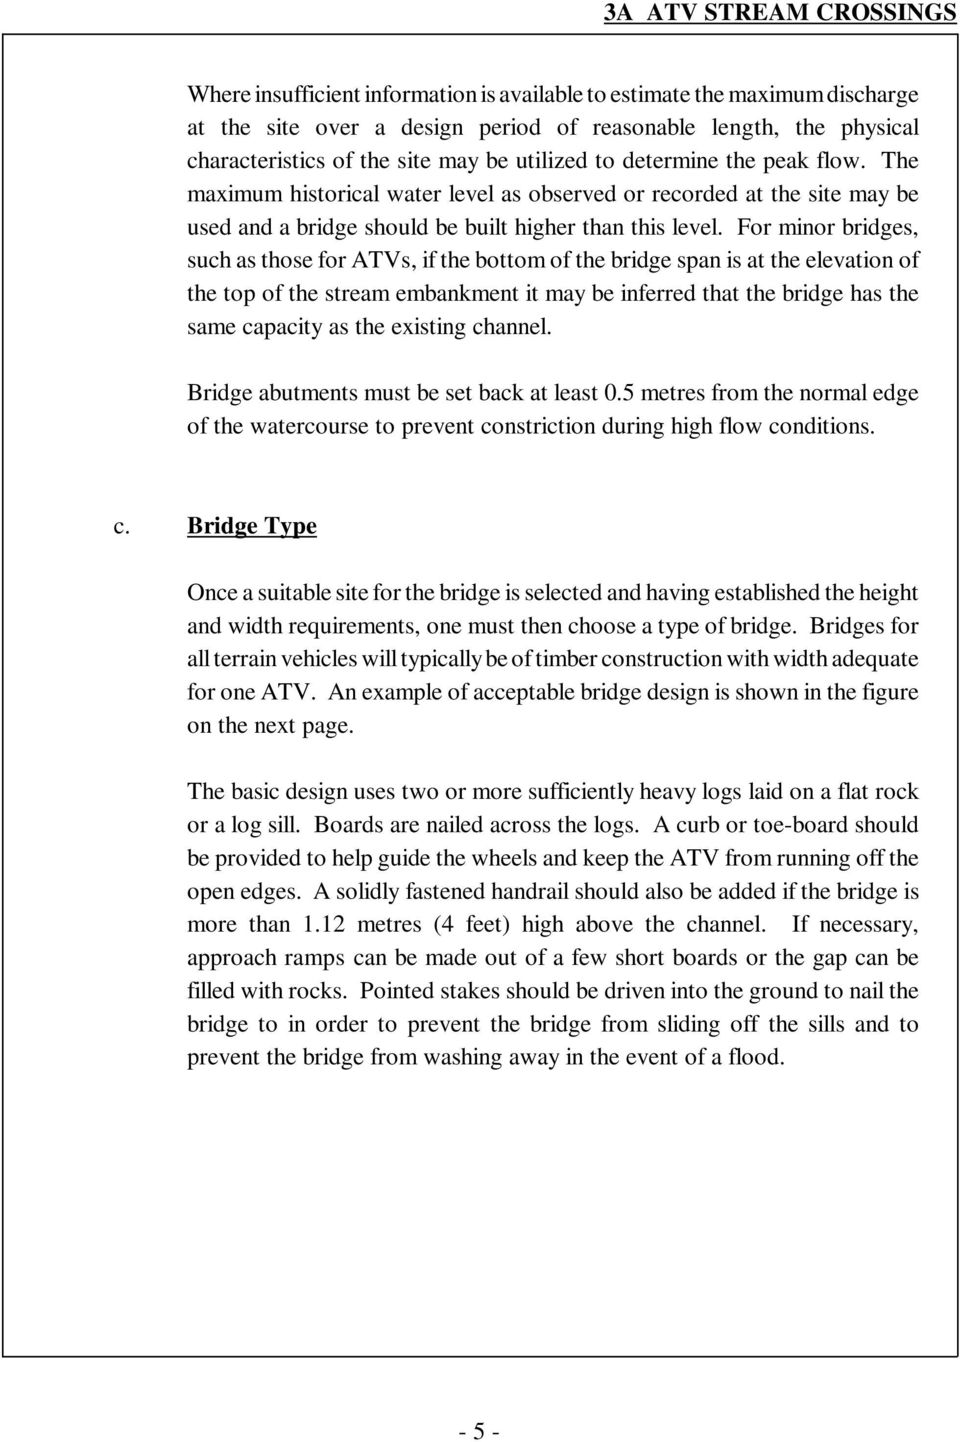 For minor bridges, such as those for ATVs, if the bottom of the bridge span is at the elevation of the top of the stream embankment it may be inferred that the bridge has the same capacity as the